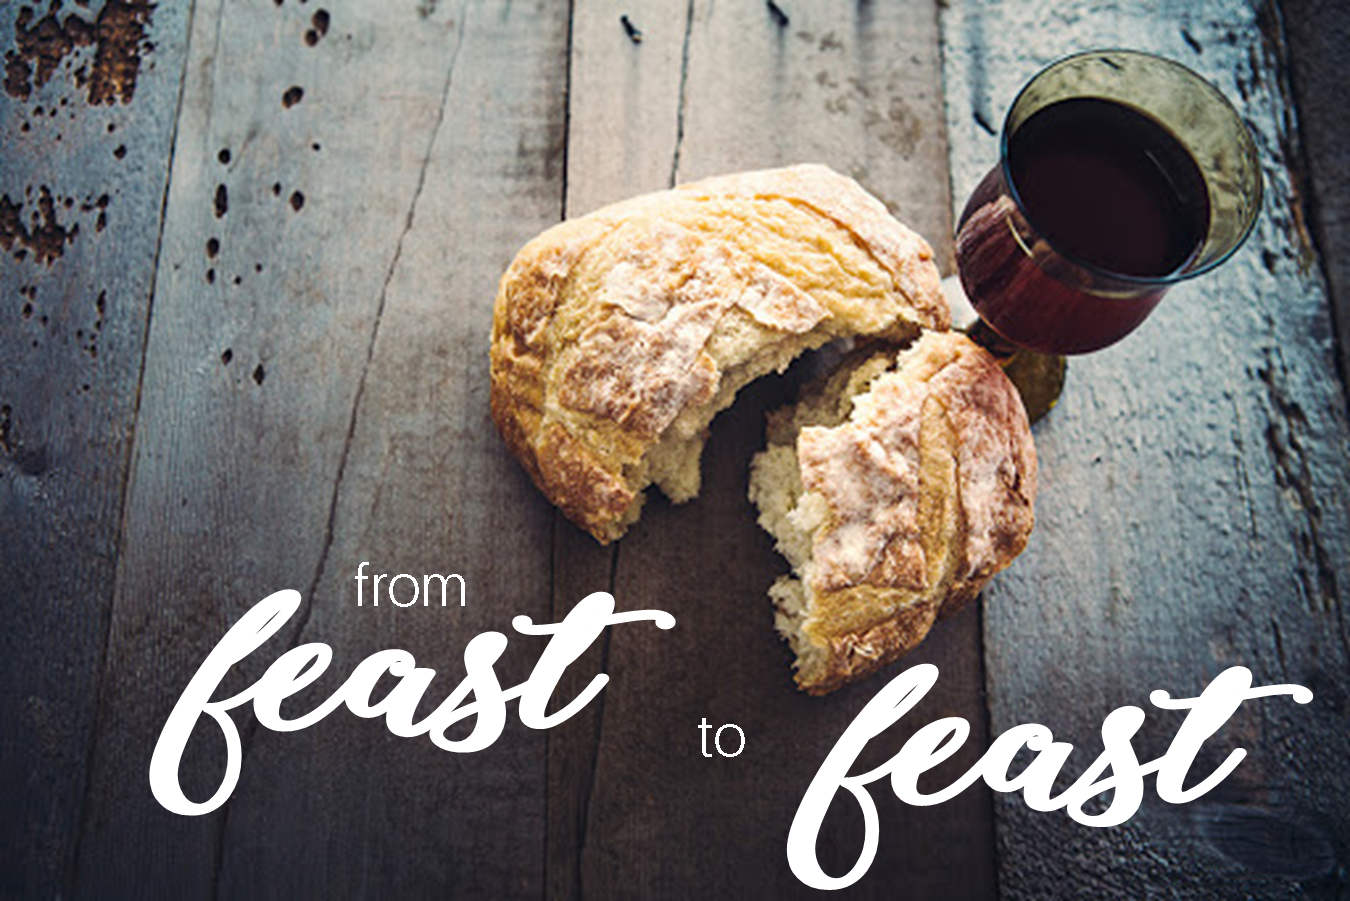 From Feast to Feast